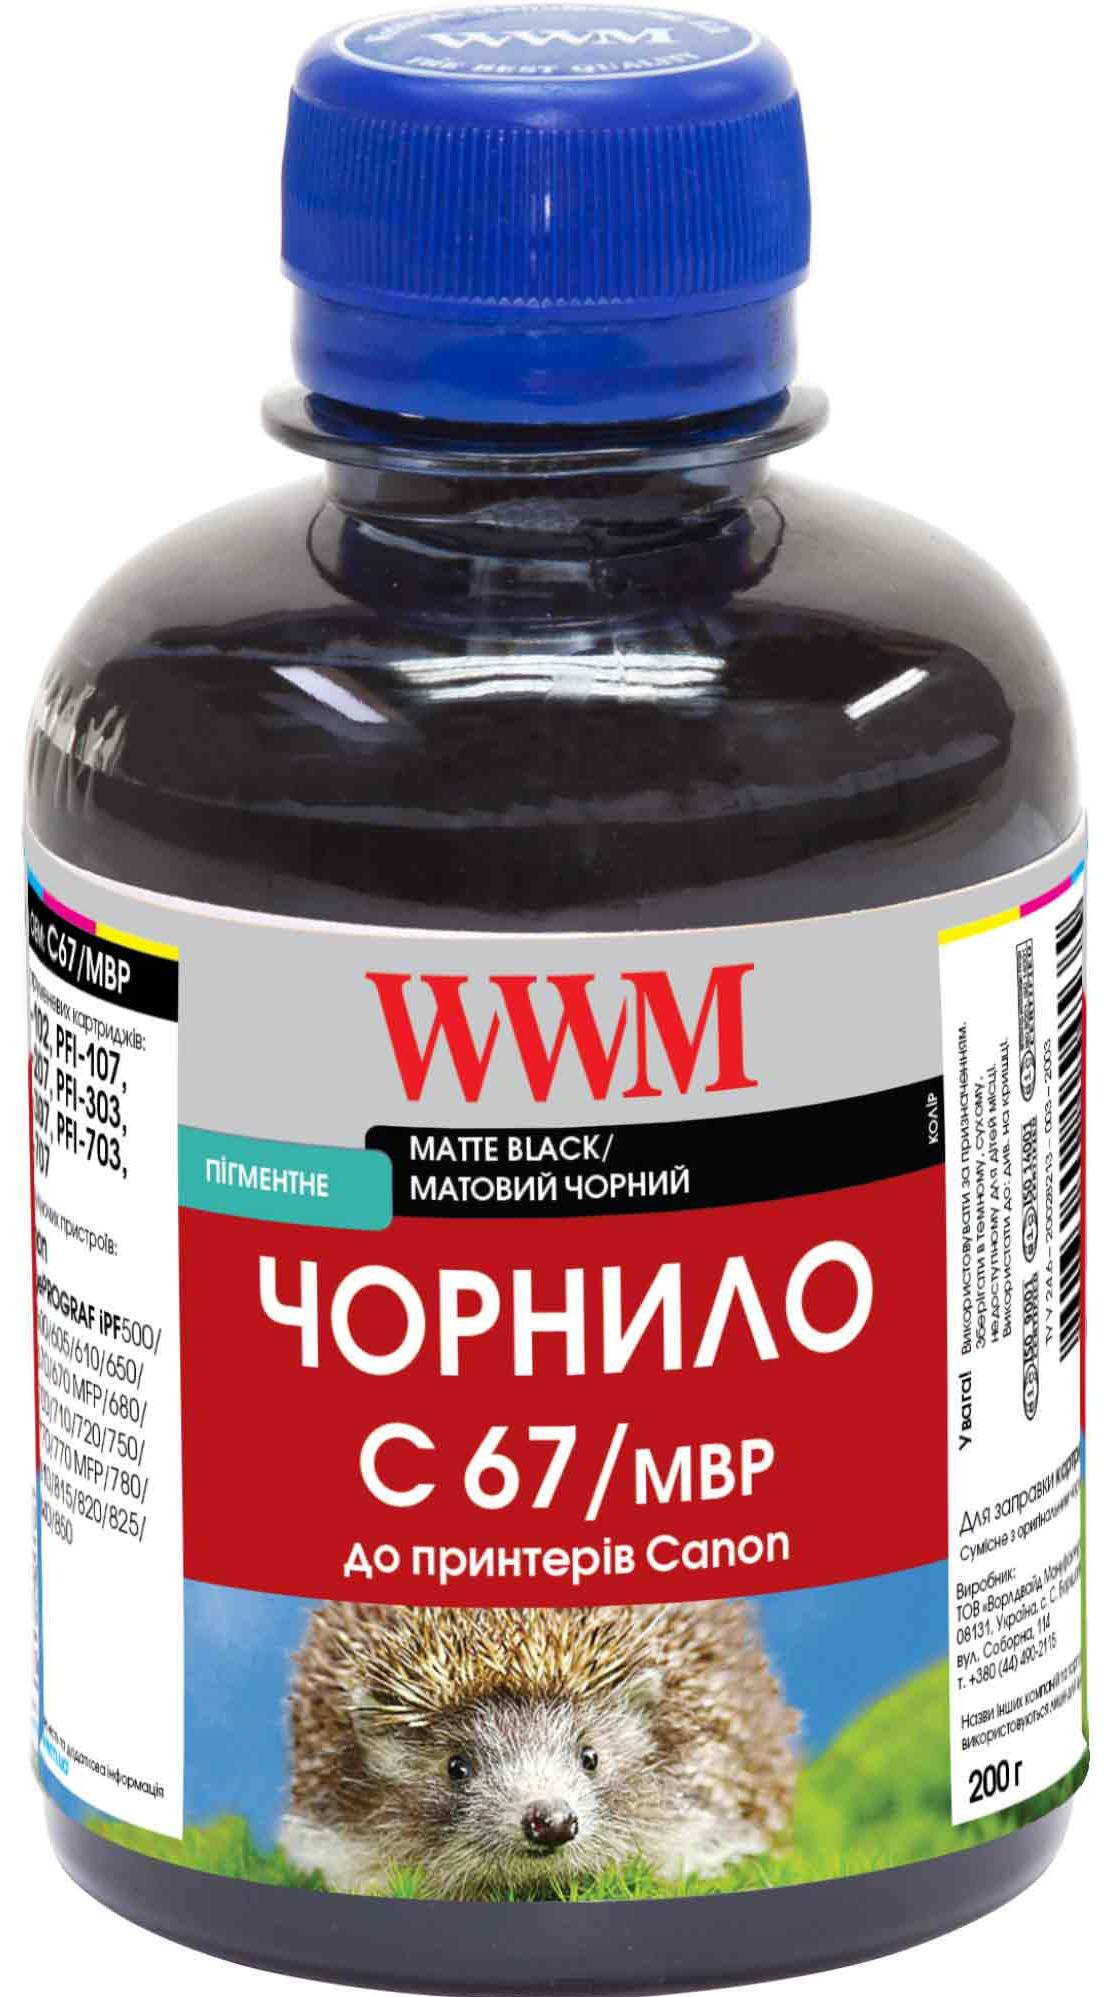 Купить Чорнило WWM for Canon IPF-107MBk - Matte Black Pigmented 200g (C67/MBP)